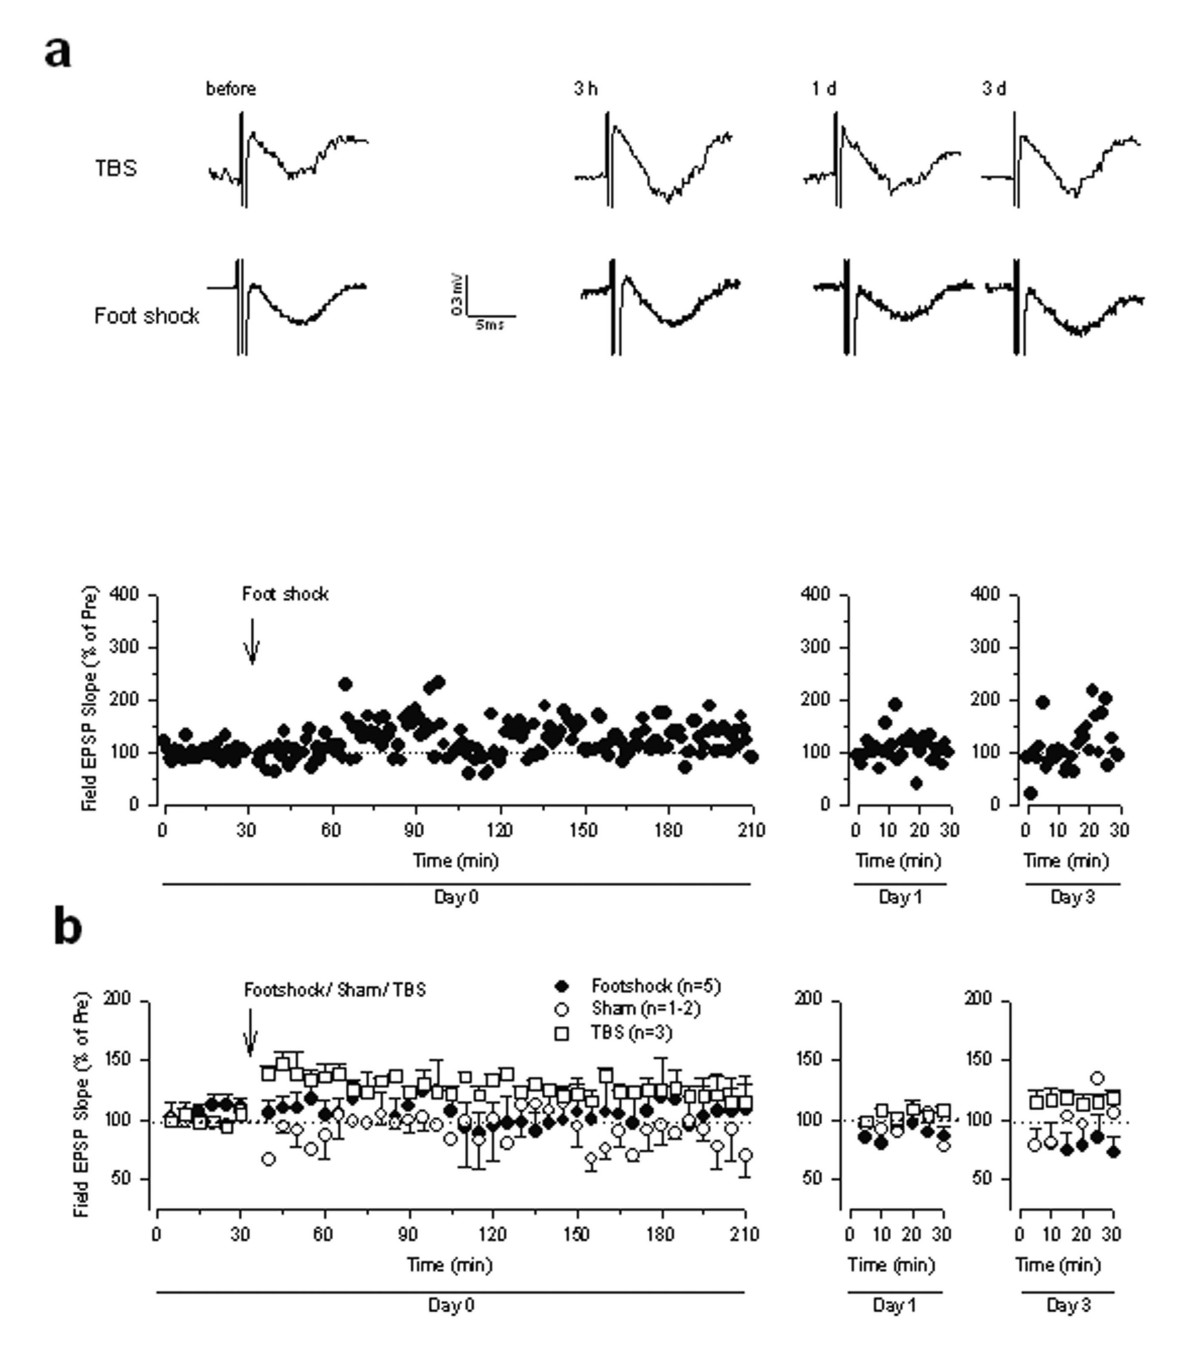 http://static-content.springer.com/image/art%3A10.1186%2F1744-8069-1-6/MediaObjects/12990_2004_Article_6_Fig9_HTML.jpg